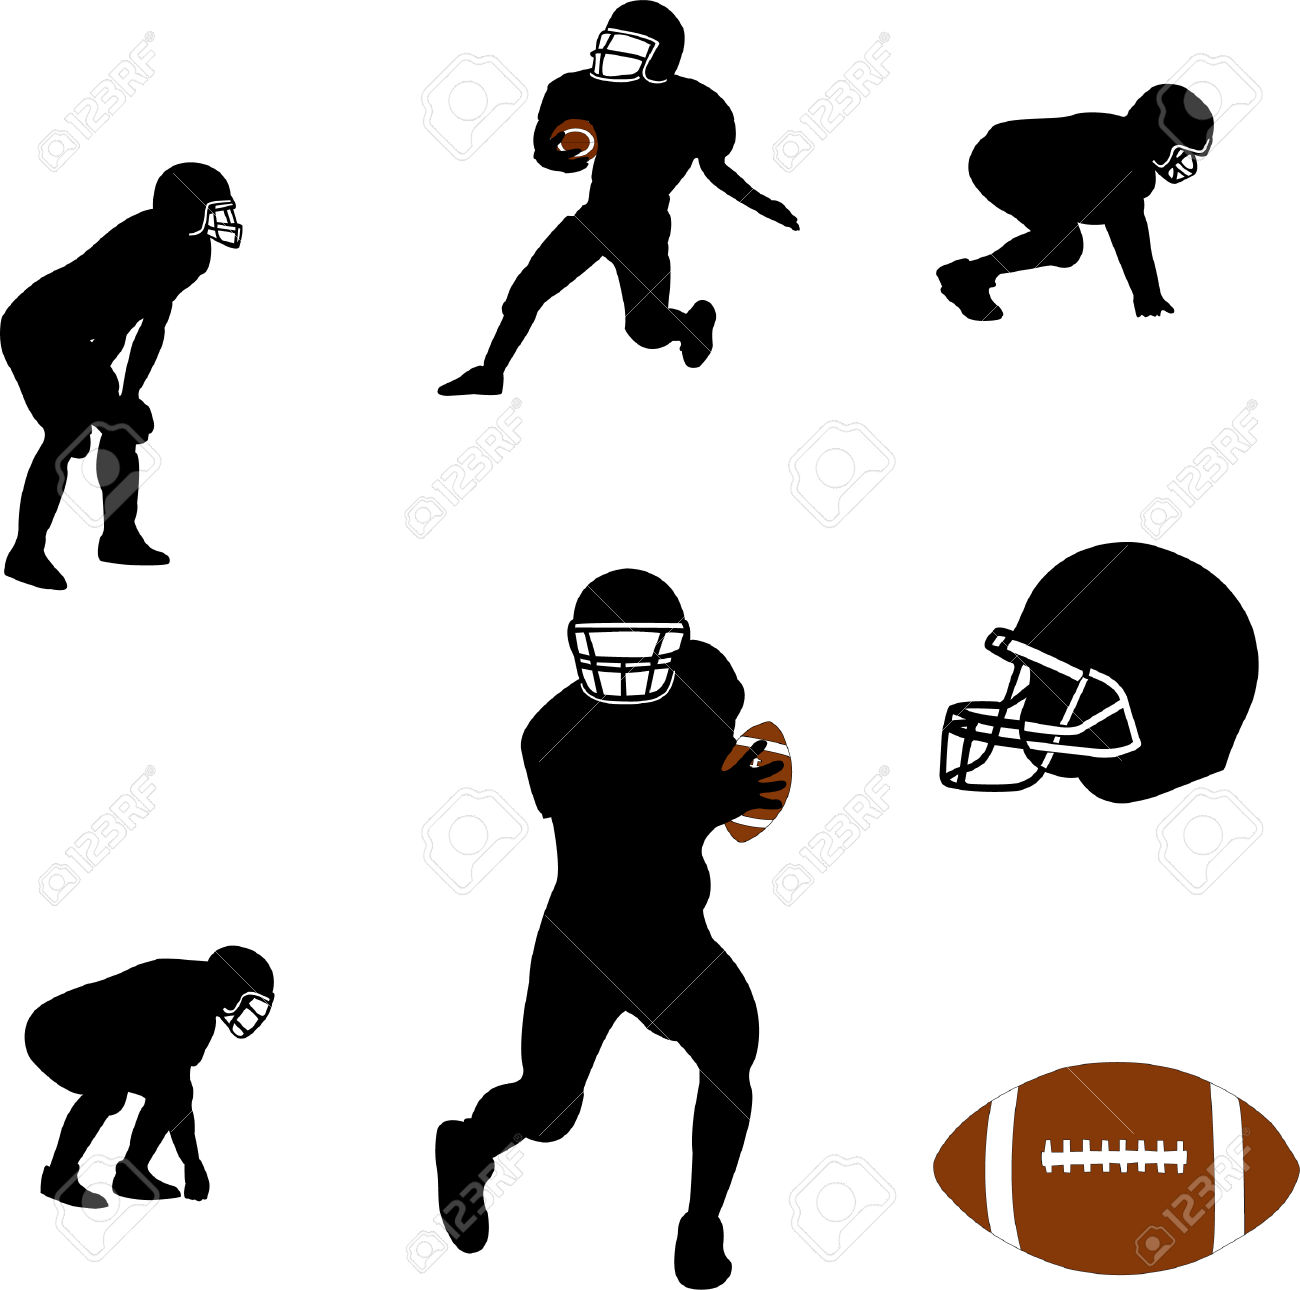 Football Team Silhouette Clipart (66+).